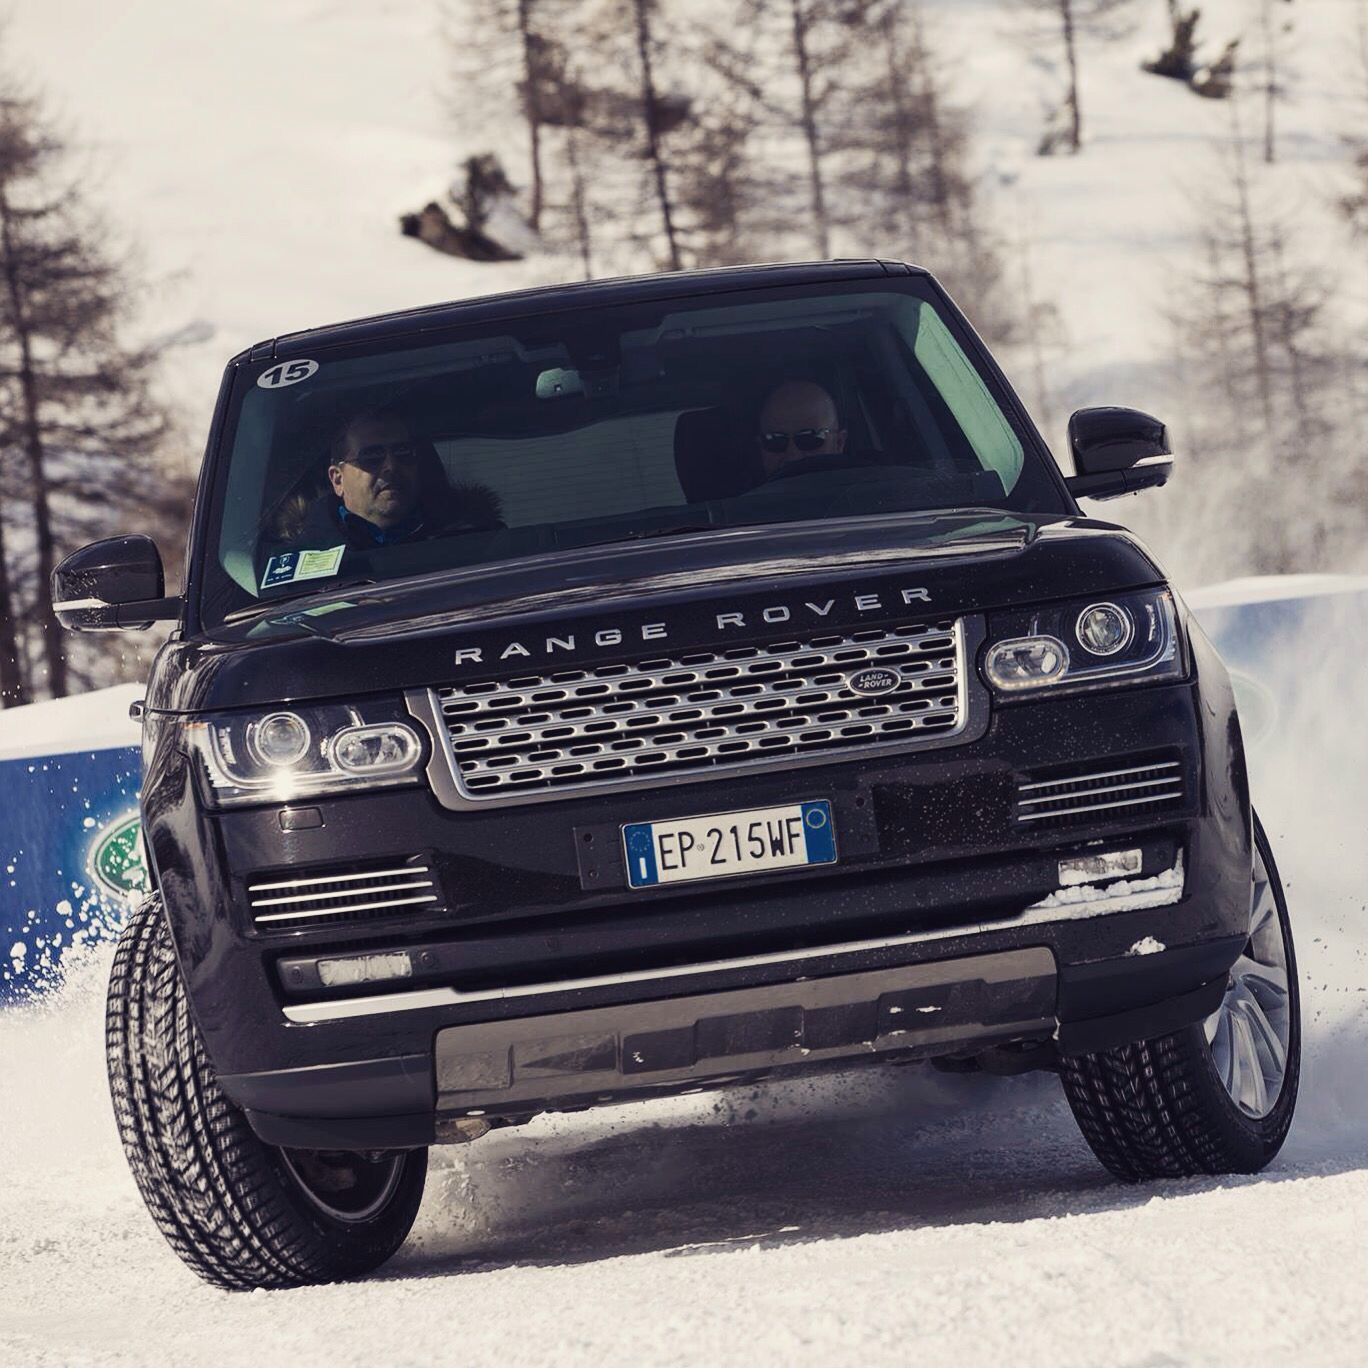 2015 Land Rover Range Rover Sport Supercharged Ventura Ca: New Range Rover. Driving On Ice. Livigno